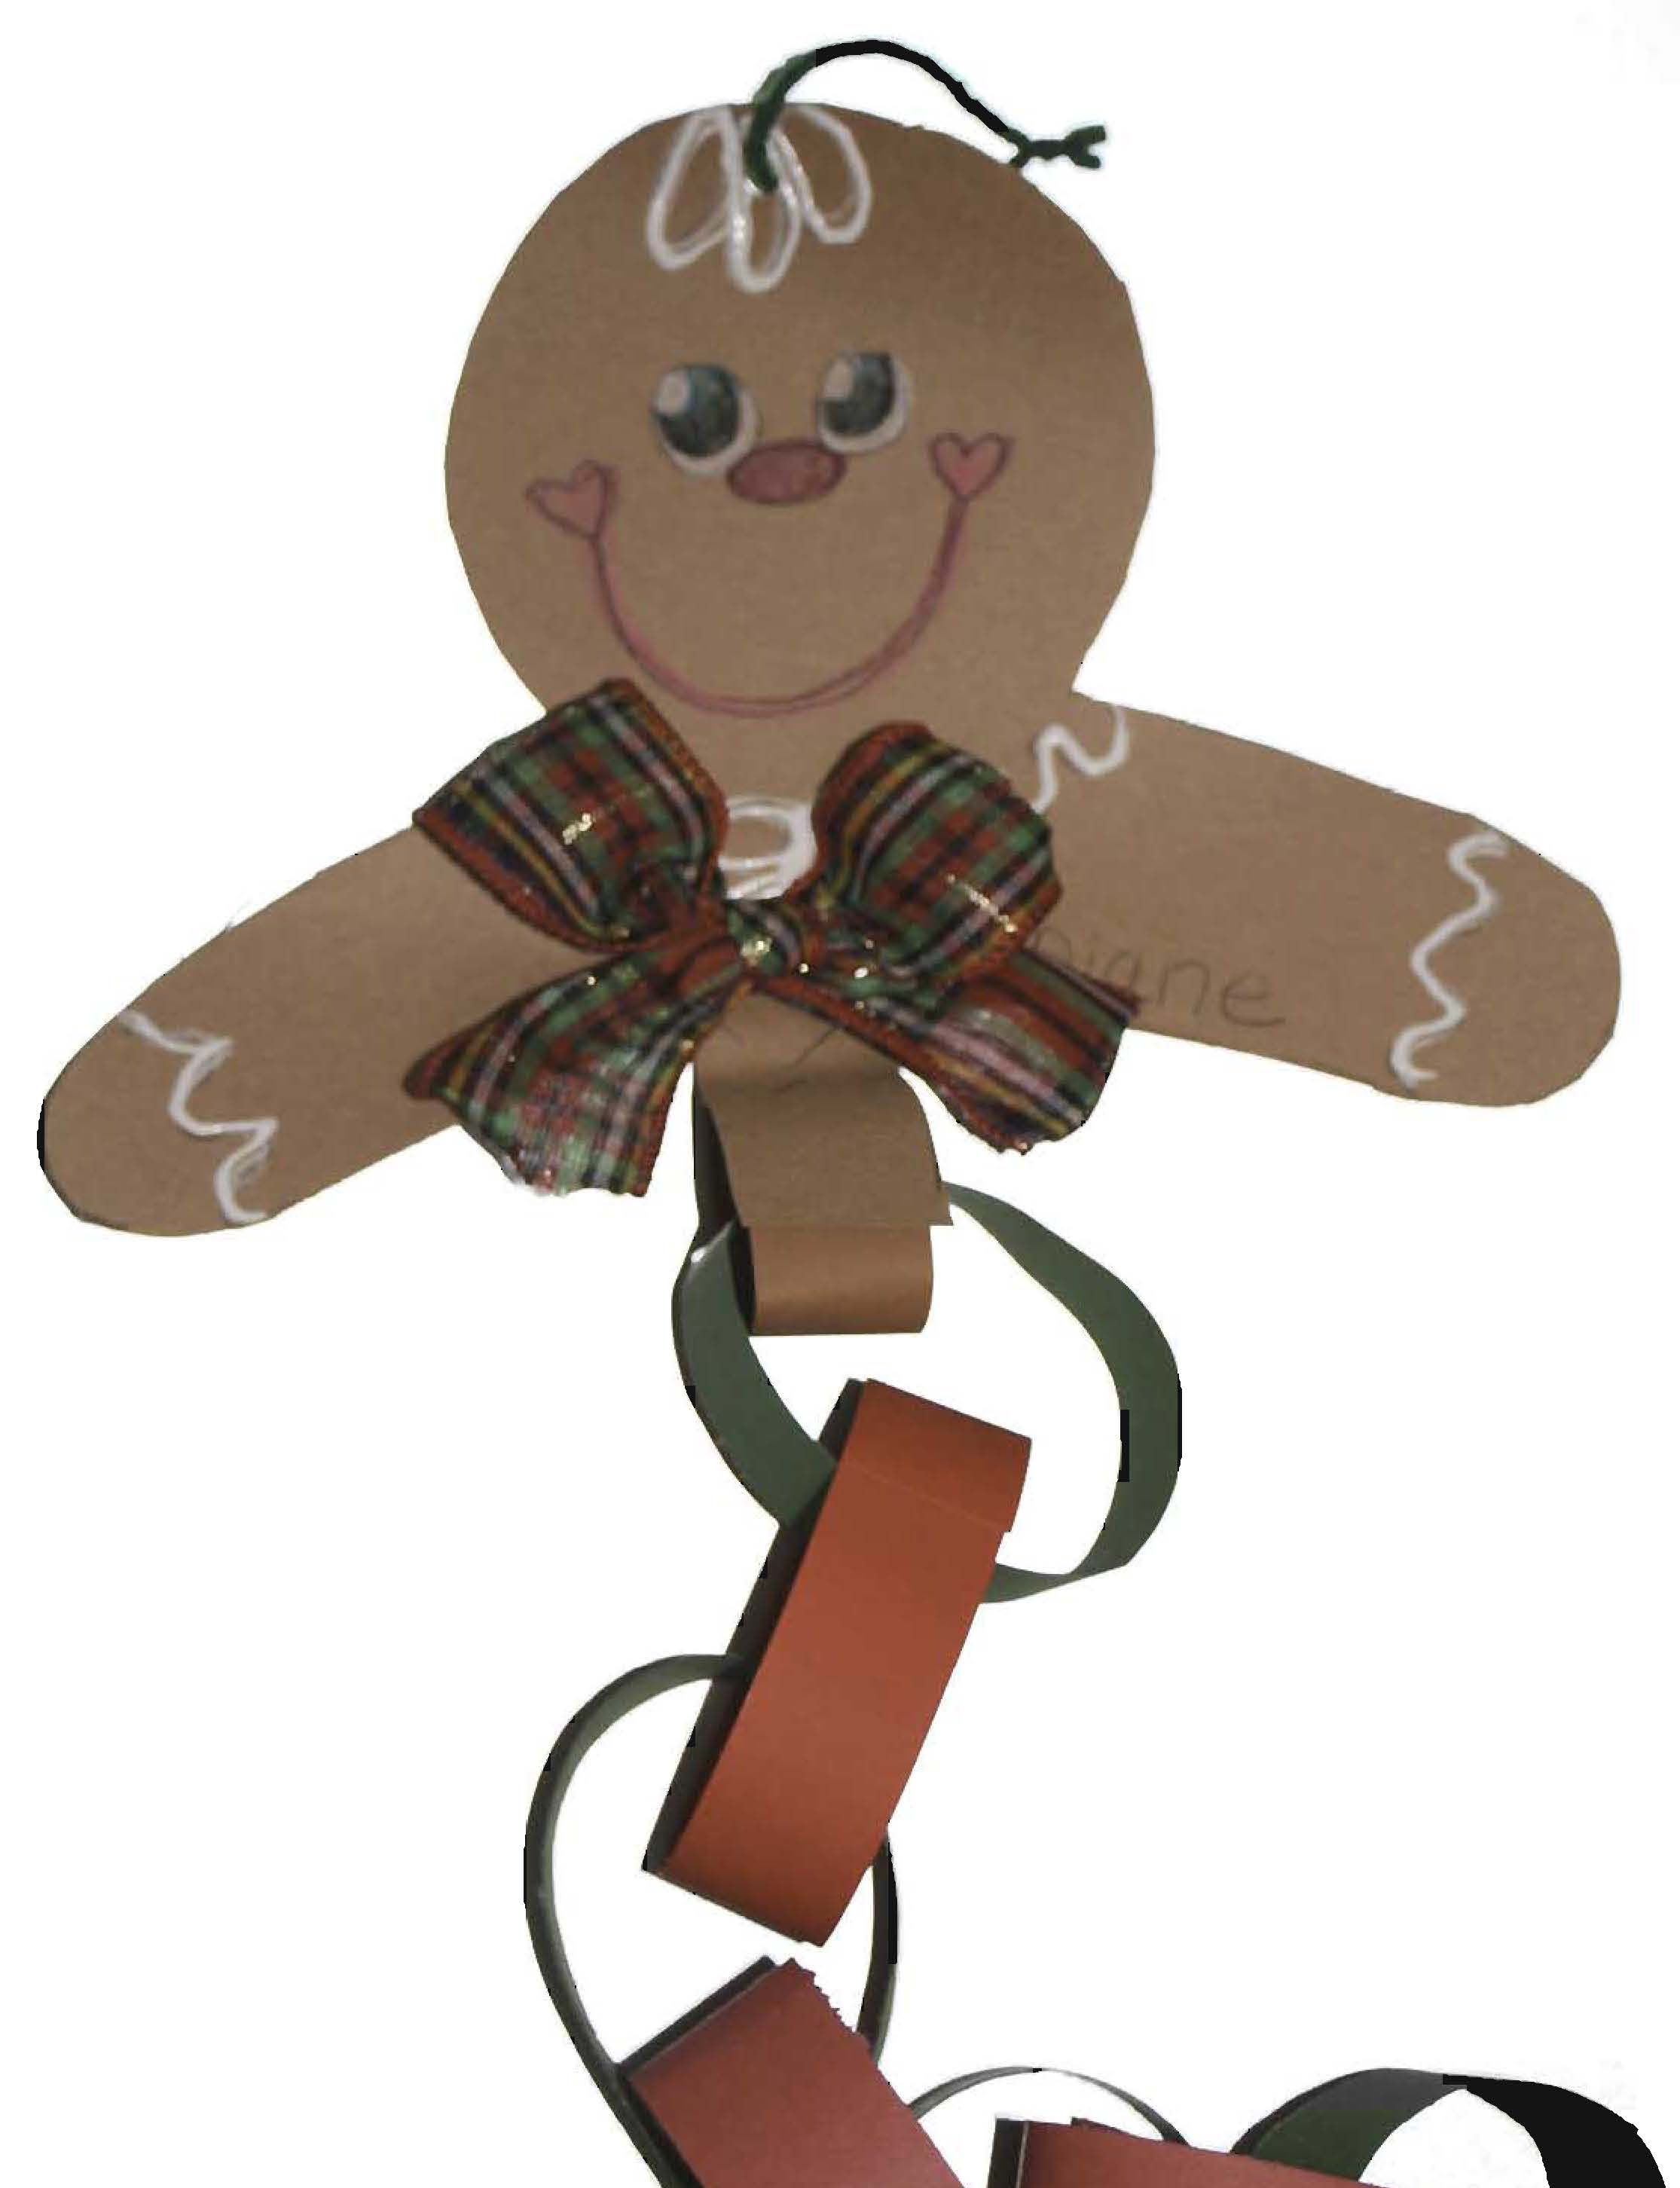 gingerbread activities, gingerbread lessons, gingerbread puzzles. gingerbread crafts, common core gingerbread, shape activities, alphabet activities, gingerbread arts and crafts, skip counting activities, counting backwards activities, activities for counting backwards from 10 to 0 and 20 to 0,